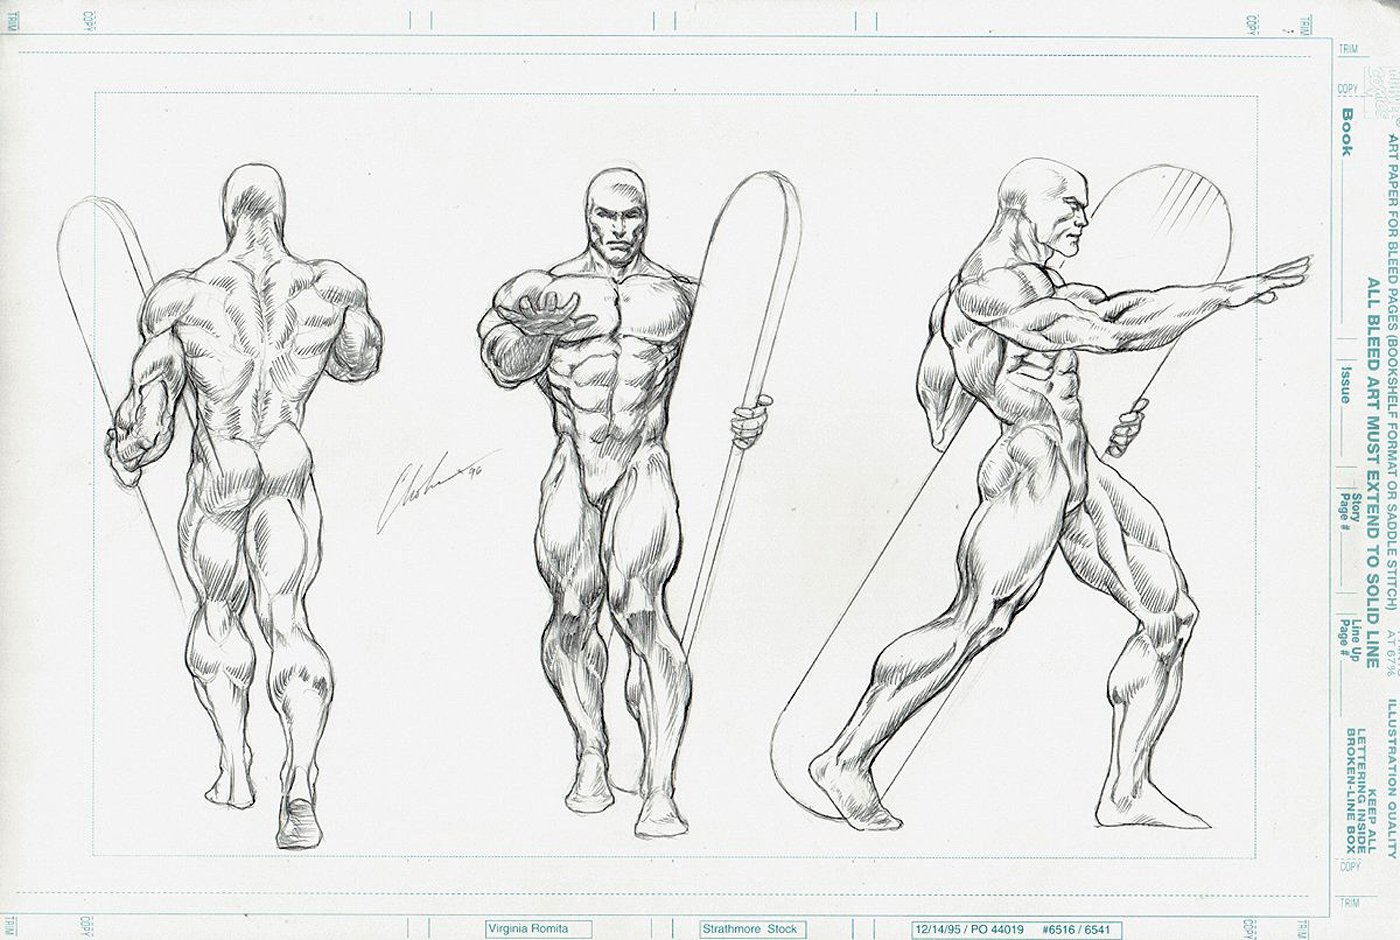 SILVER SURFER Style Guide Art For Model / Statue (1996)